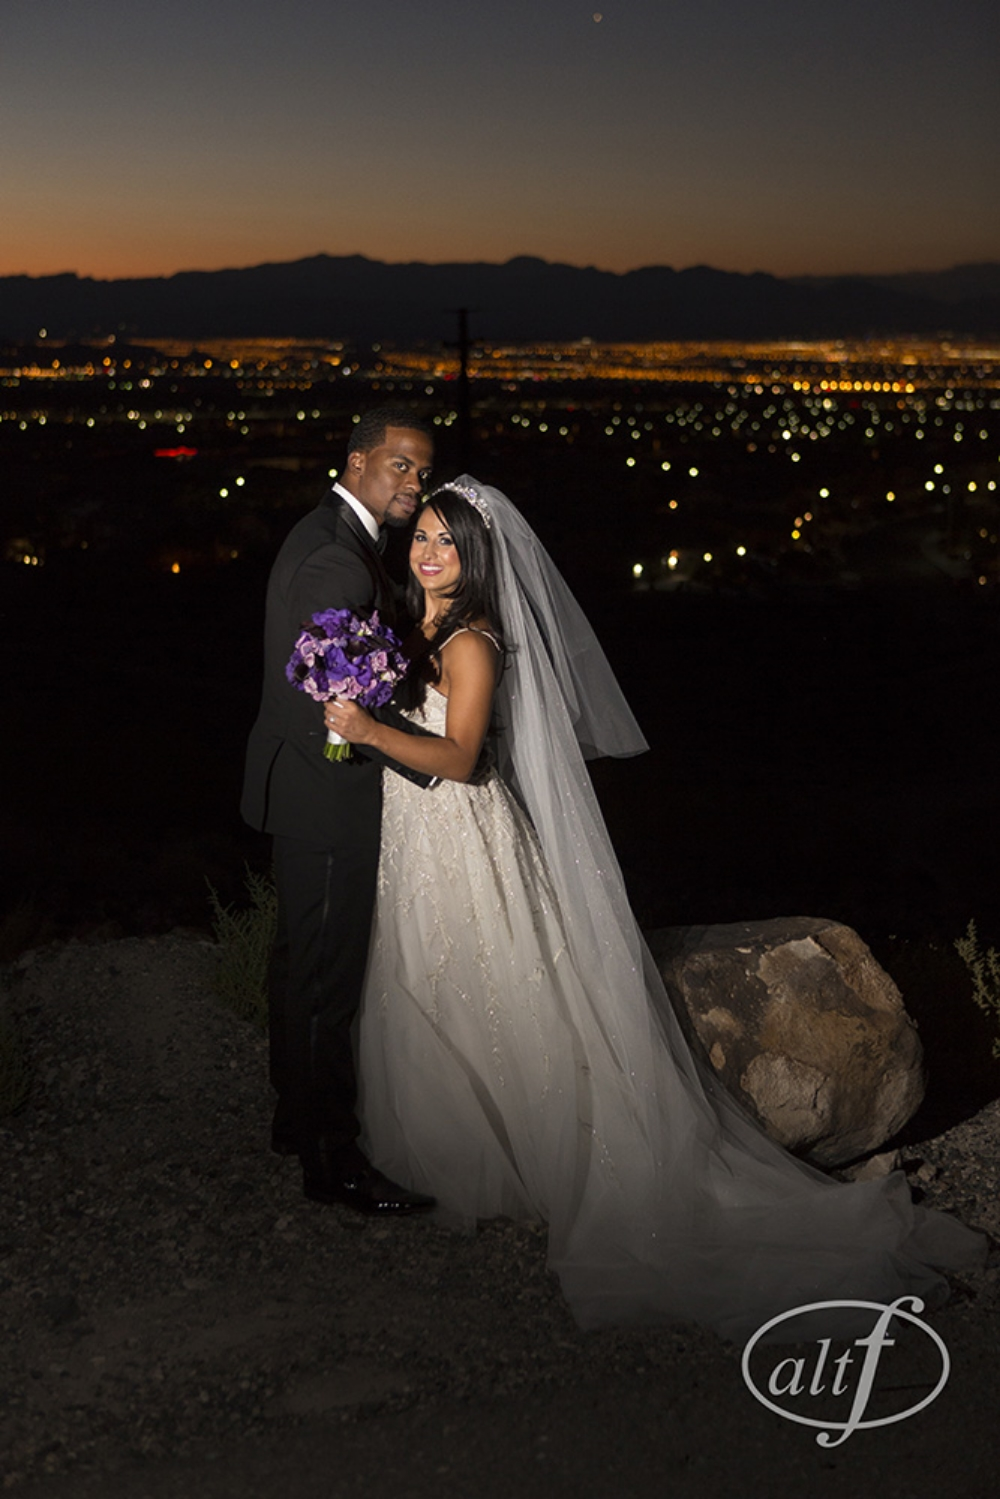 Couple wedding portrait in front of Vegas skyline.  Las Vegas Wedding Planner Andrea Eppolito.  Image by Altf.com.